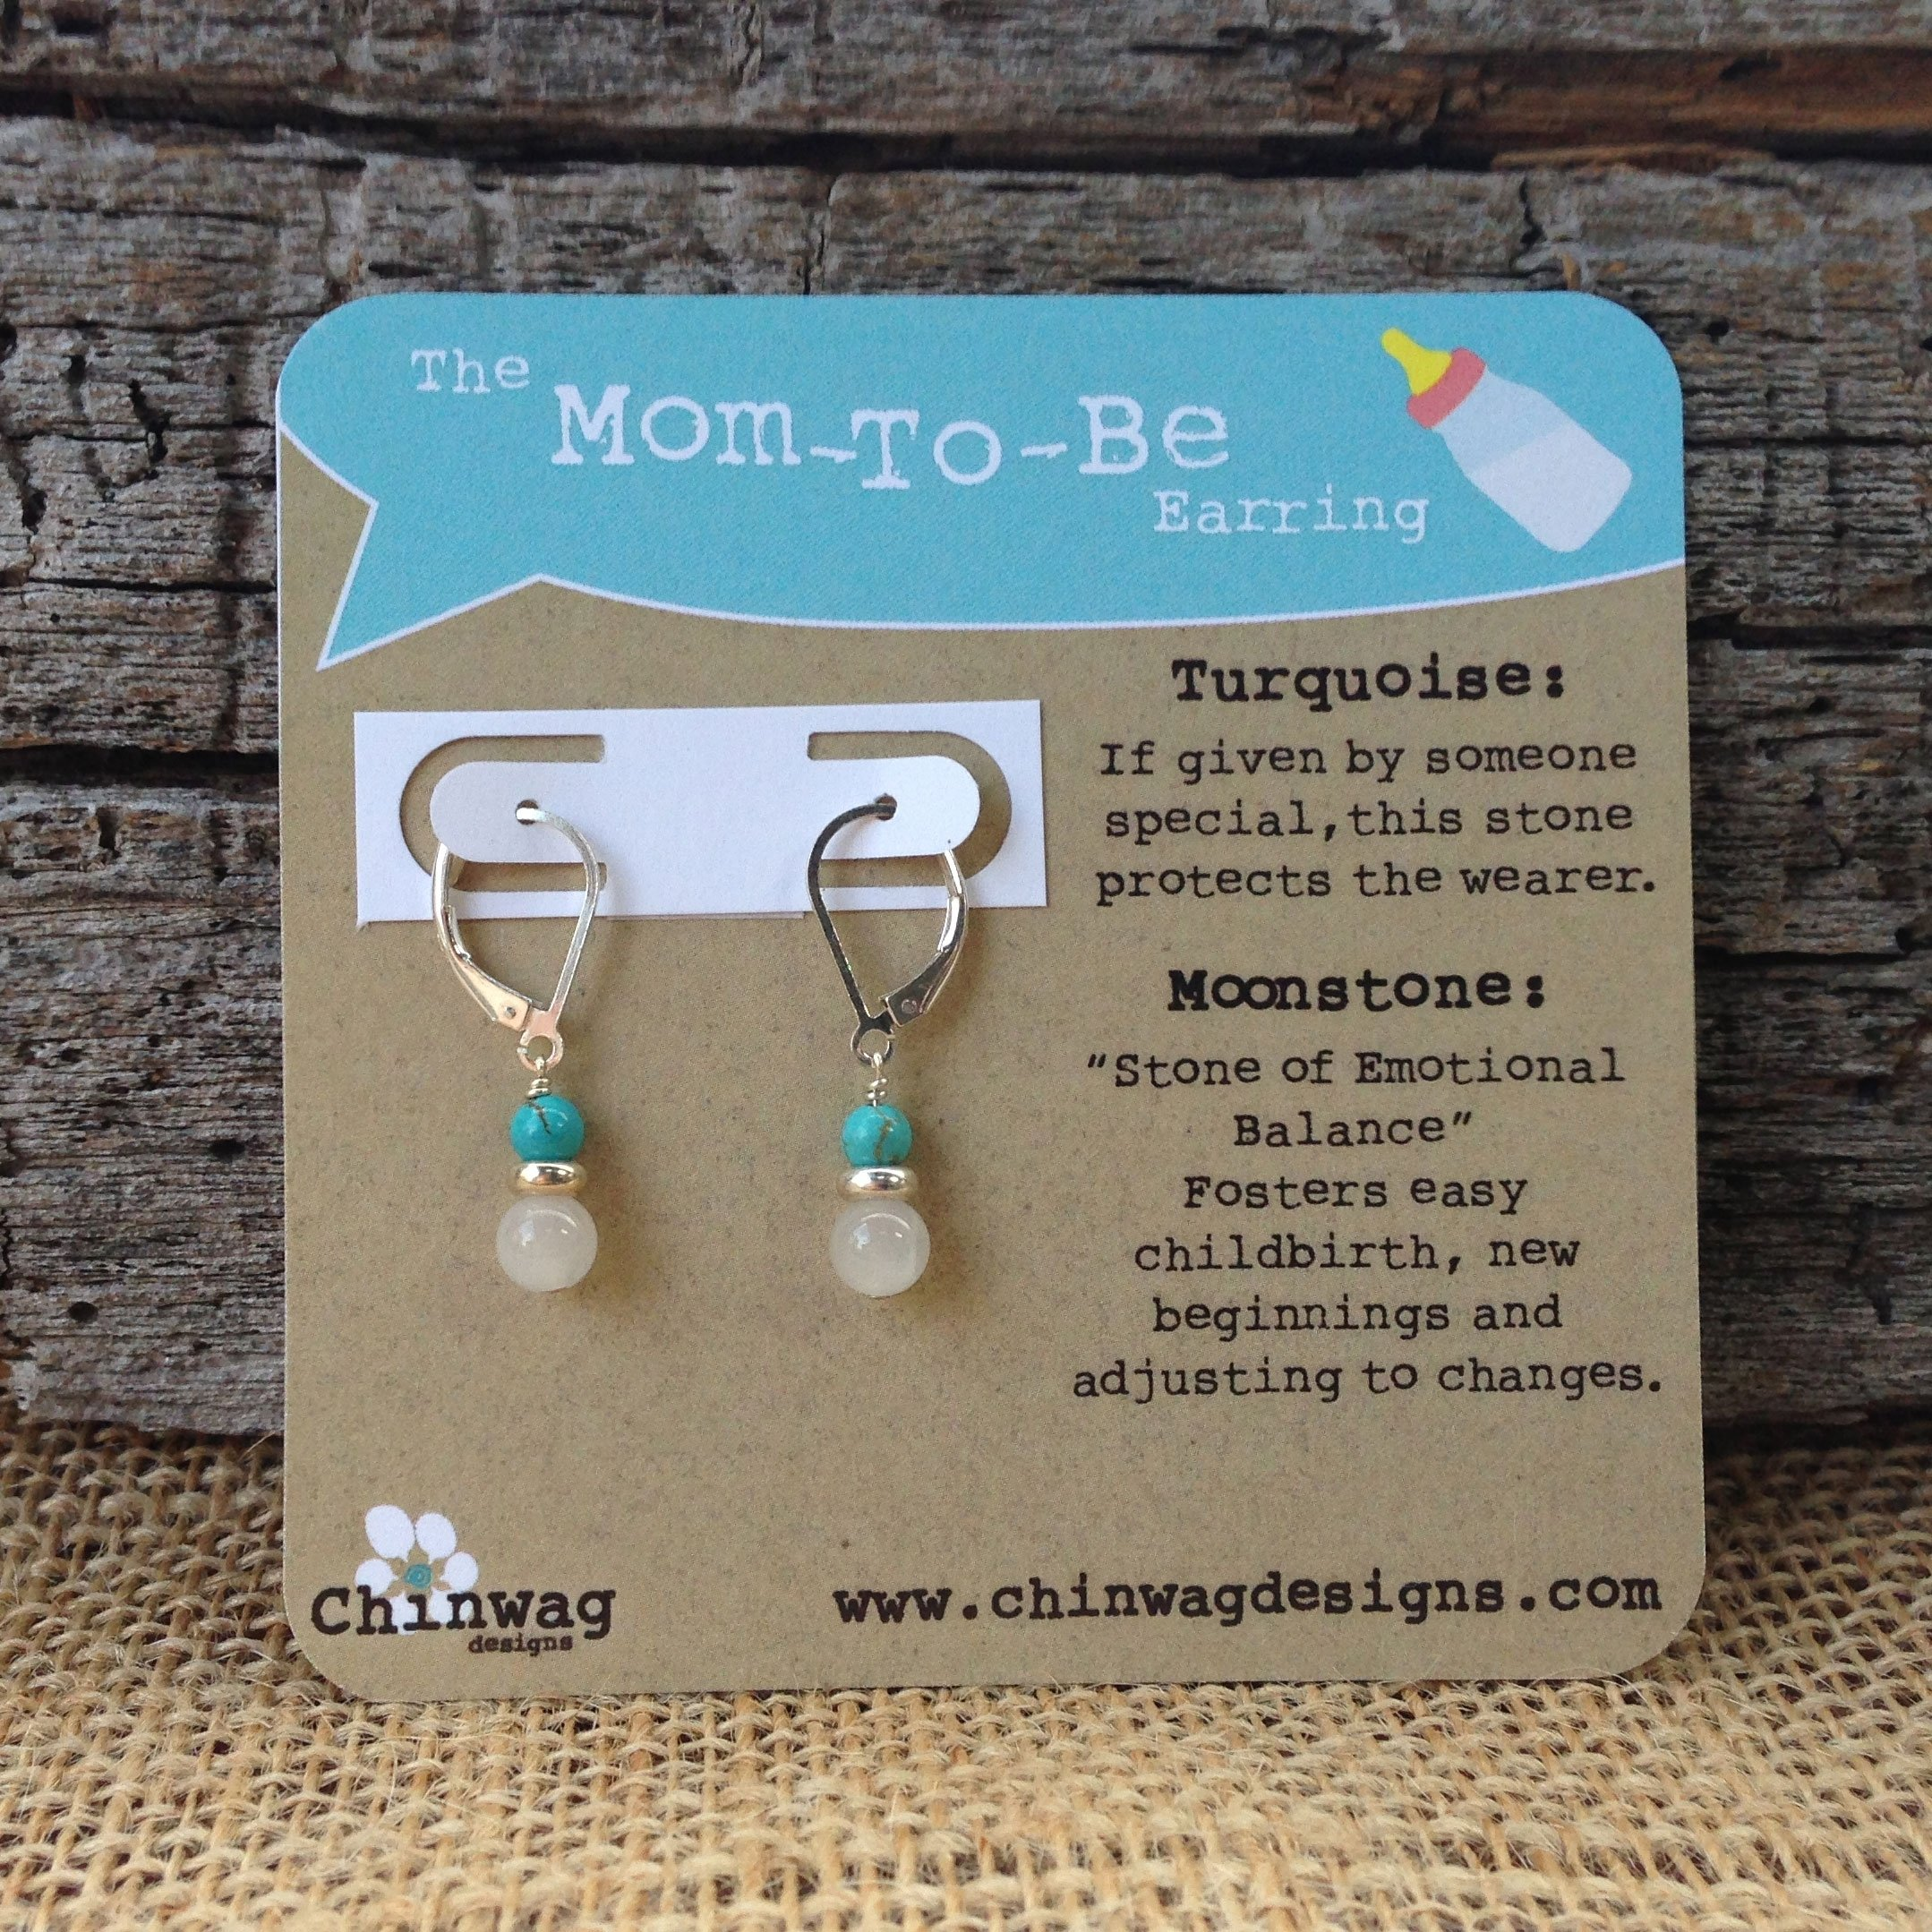 10 Attractive Mommy To Be Gift Ideas the mom to be earring chinwag designs 1 2020